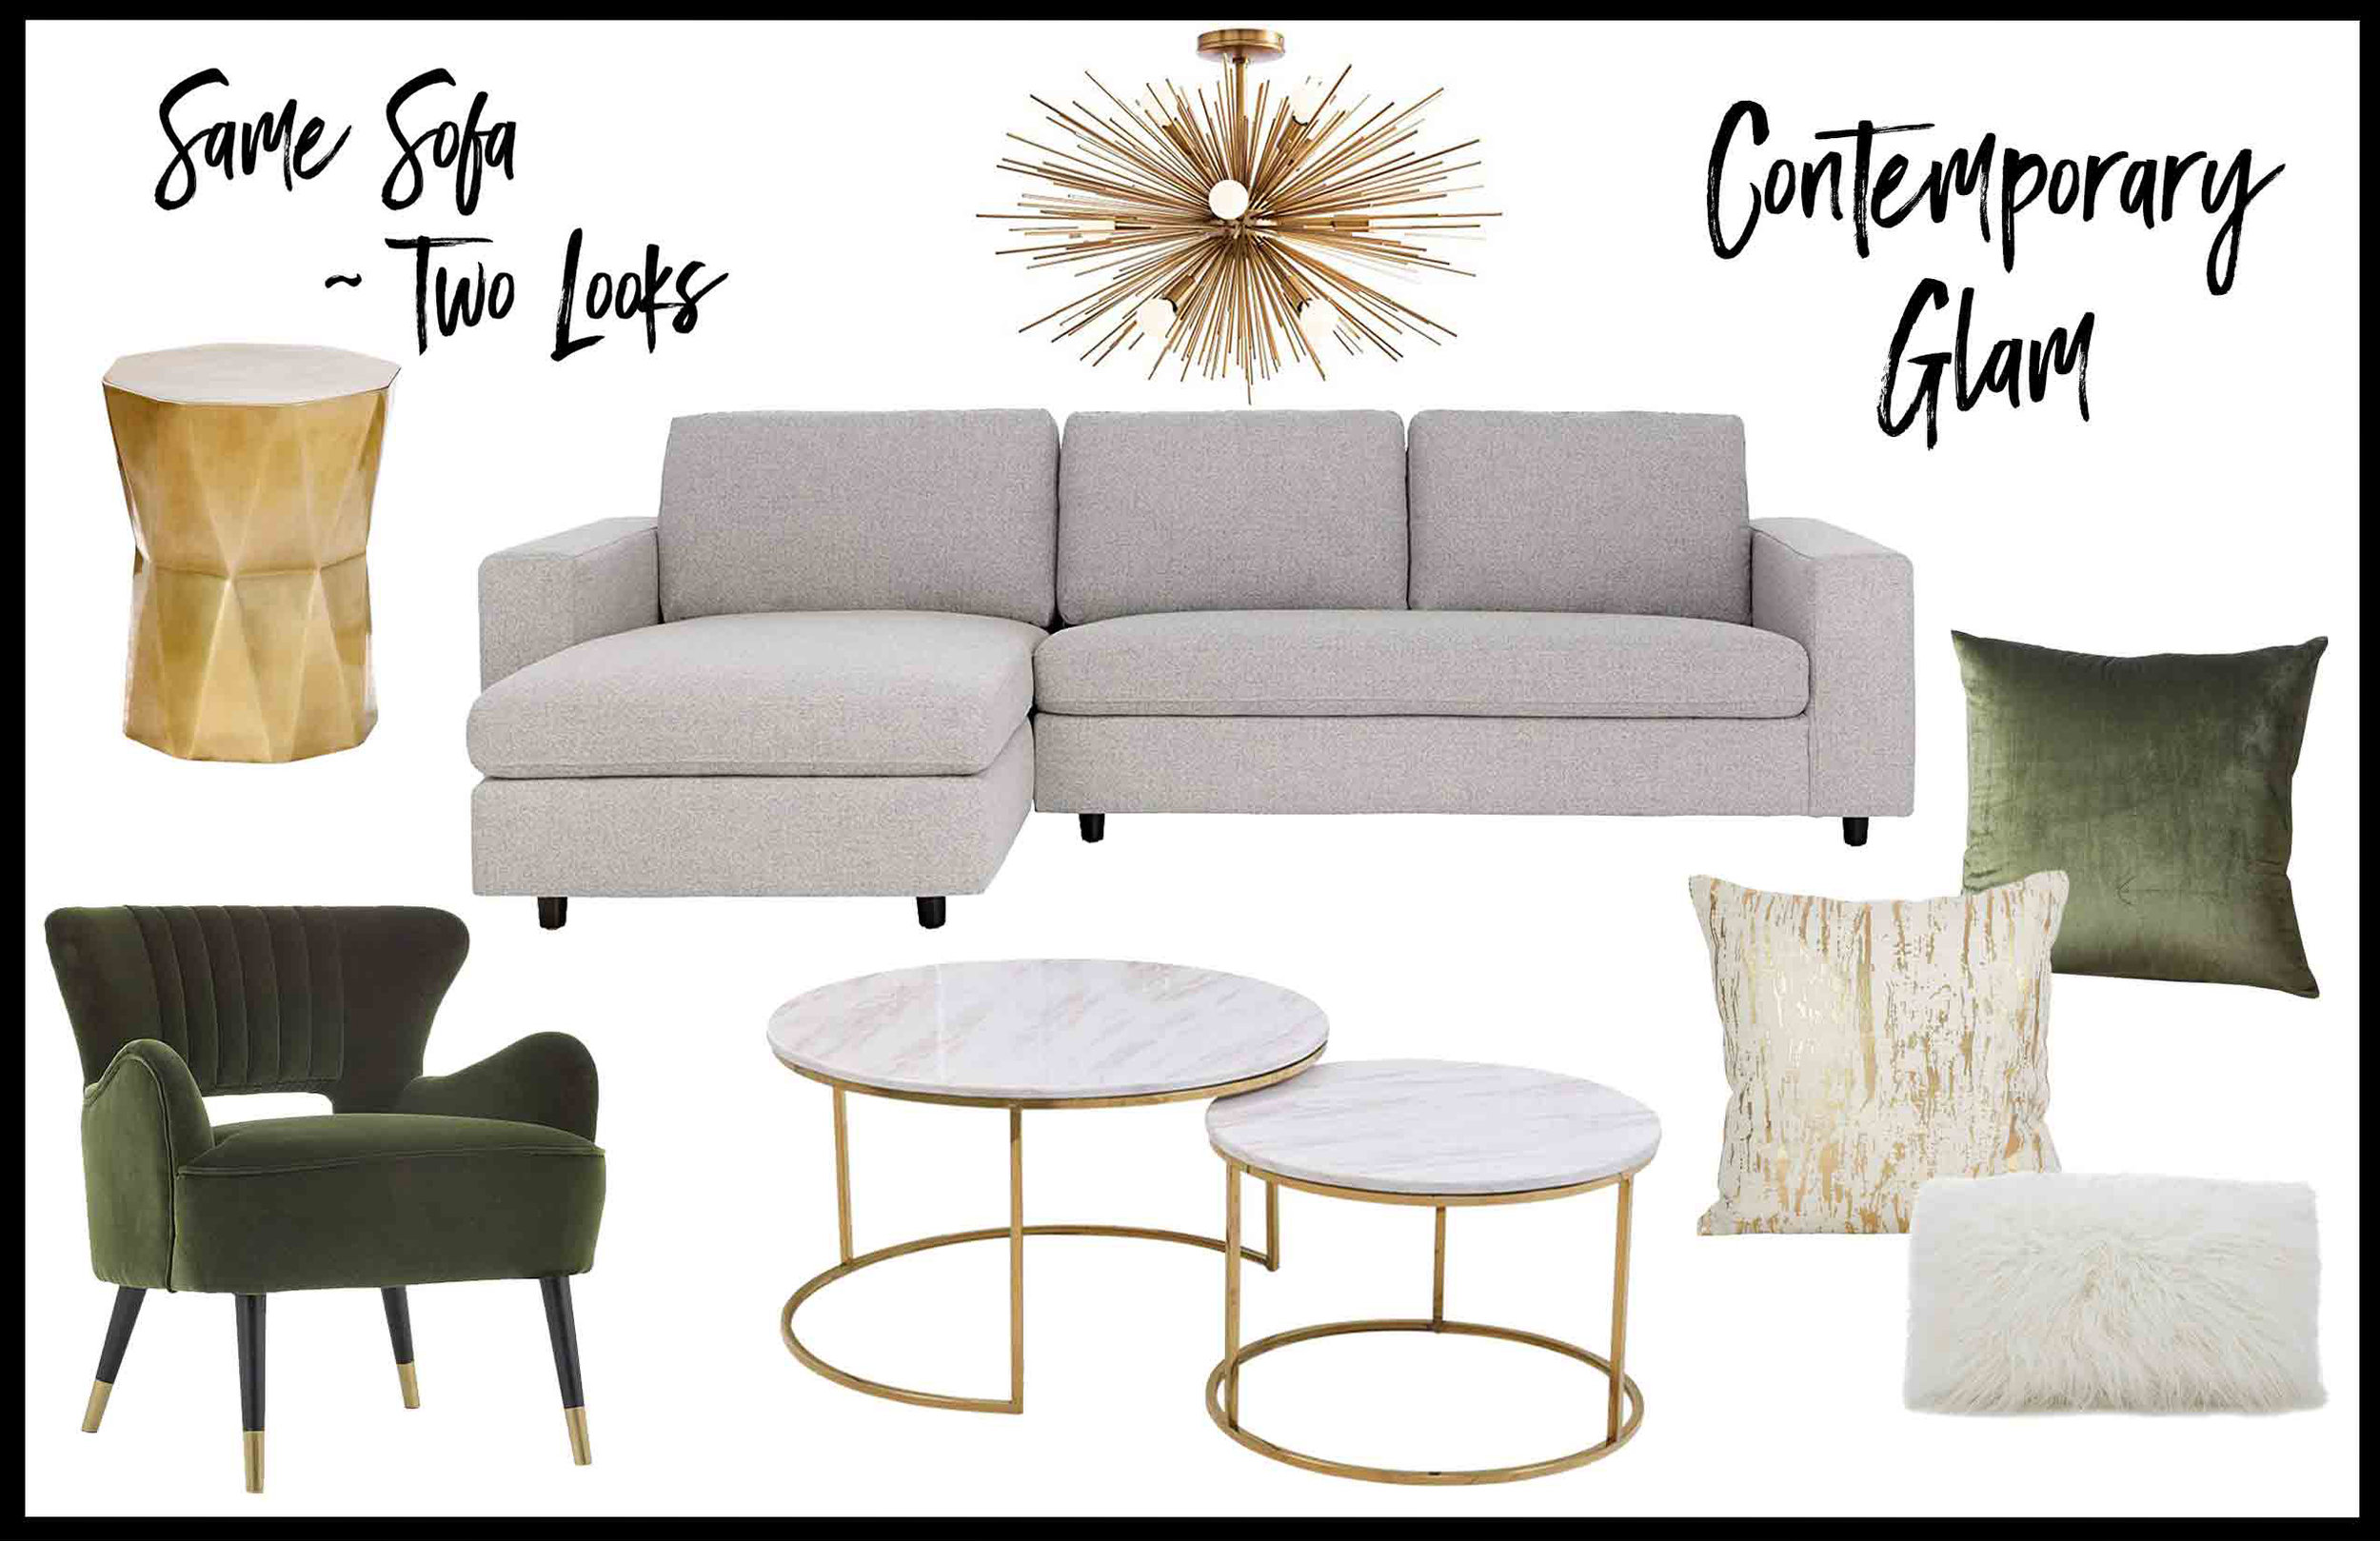 One-Sofa-Two-Looks-Cont-Glam.jpg